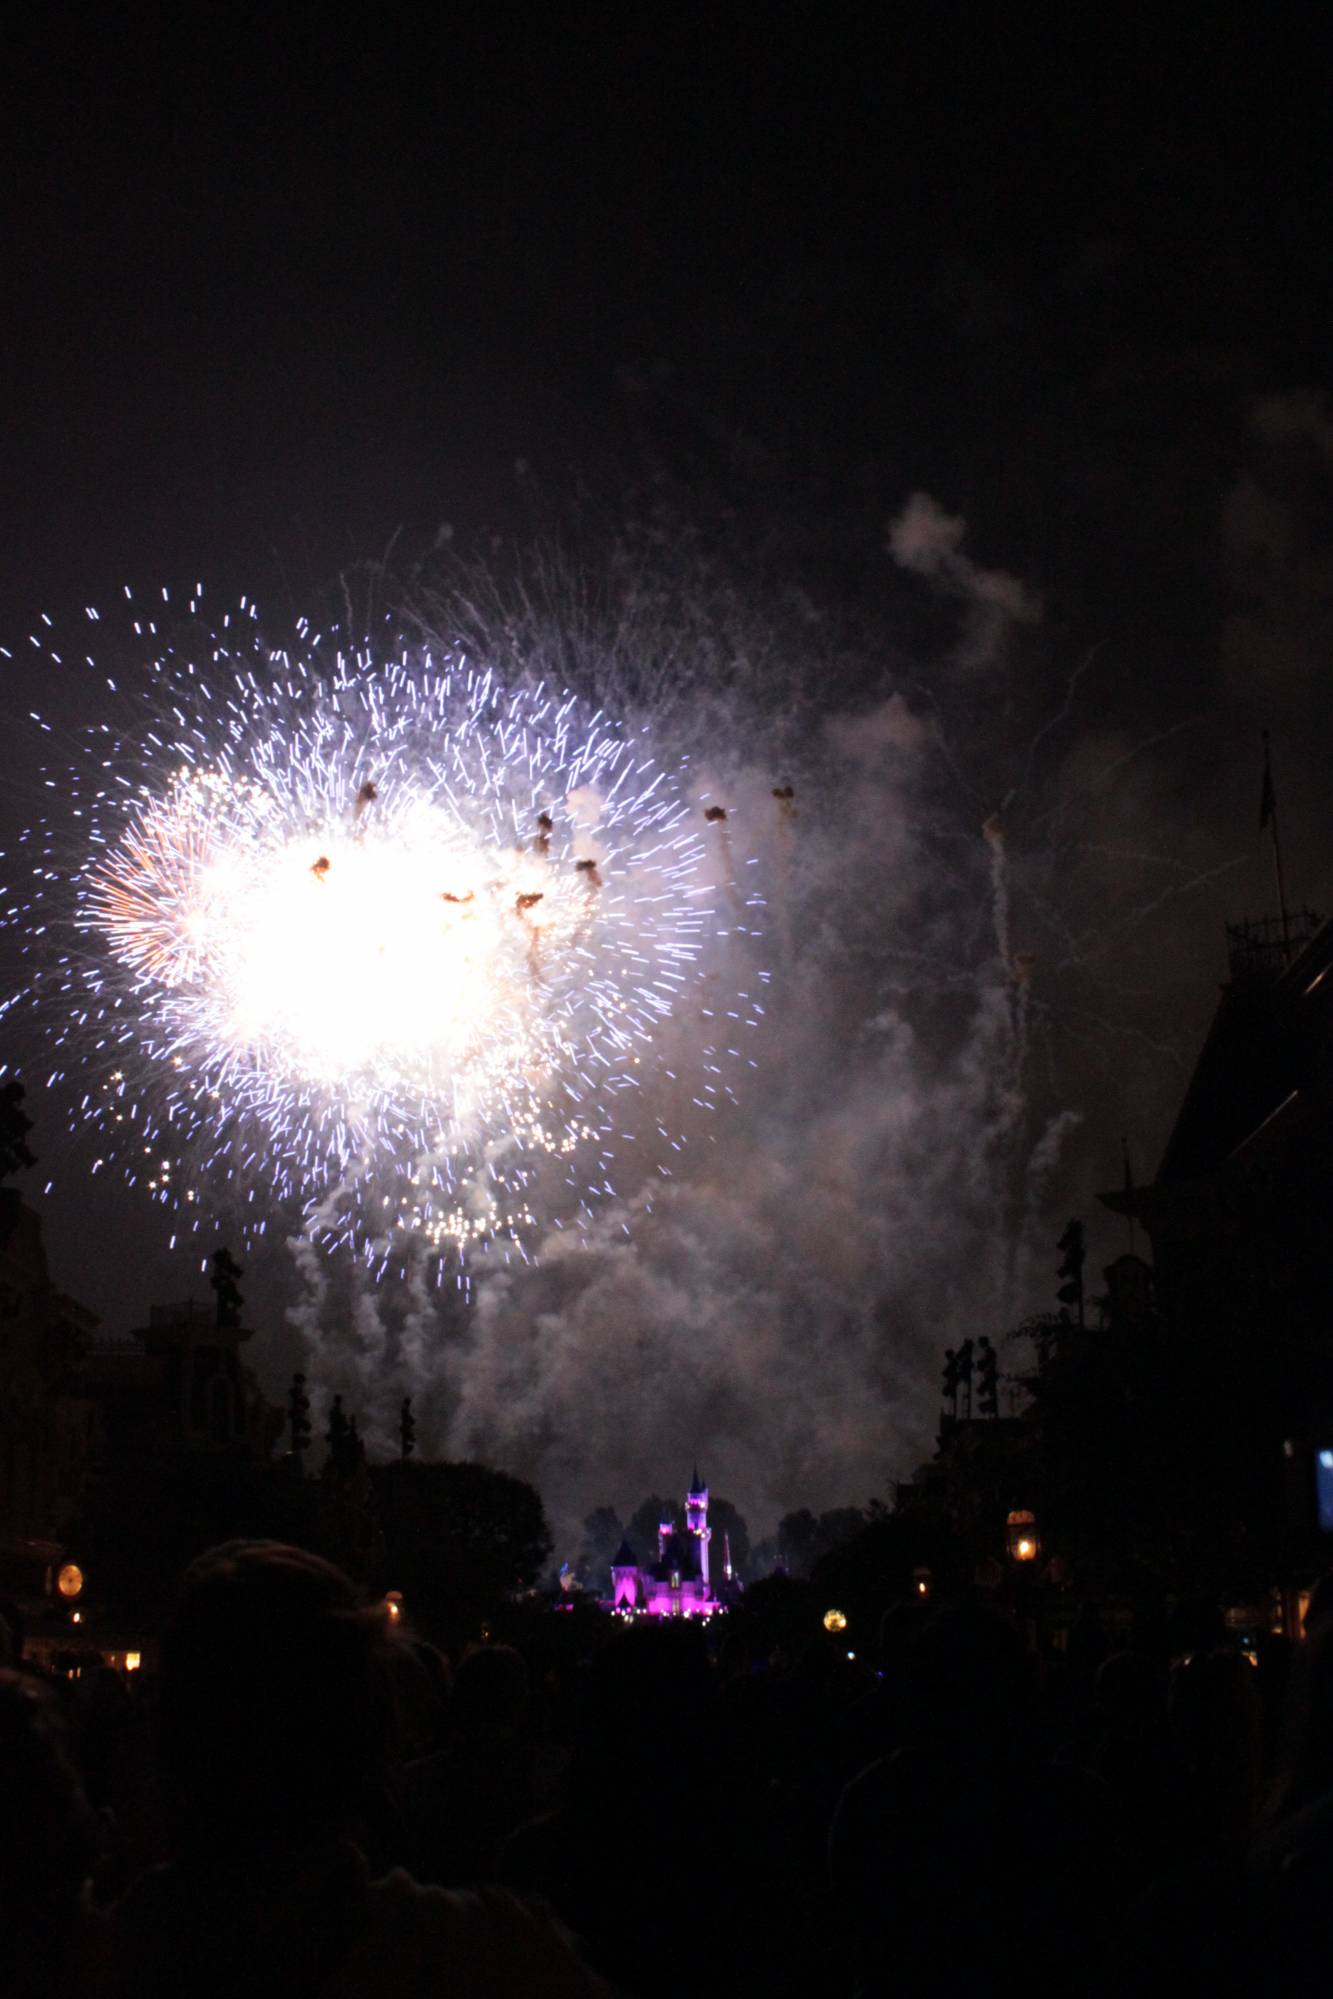 Disneyland - Magical (summer fireworks show)